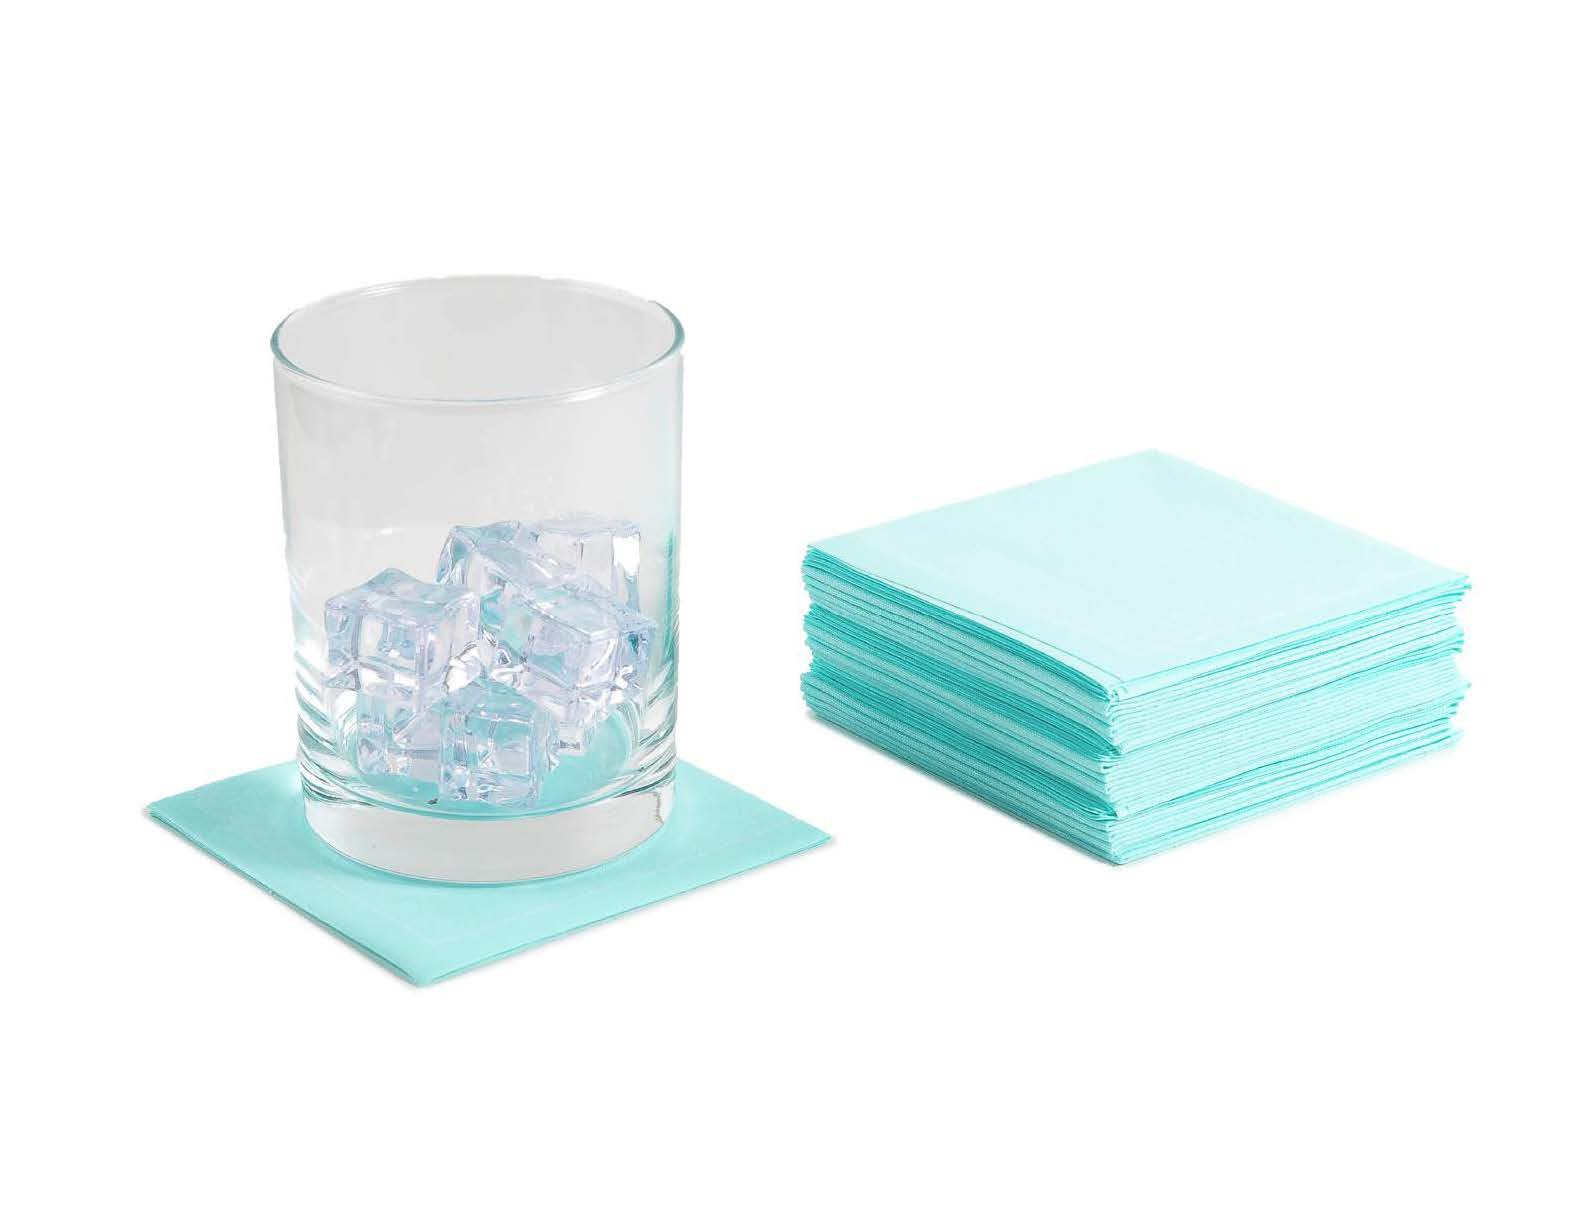 "Sea Glass Cotton 1/4 Fold Cocktail (140 GSM) - 8"" x 8"" (folded 4"" x 4"") - 600 units"